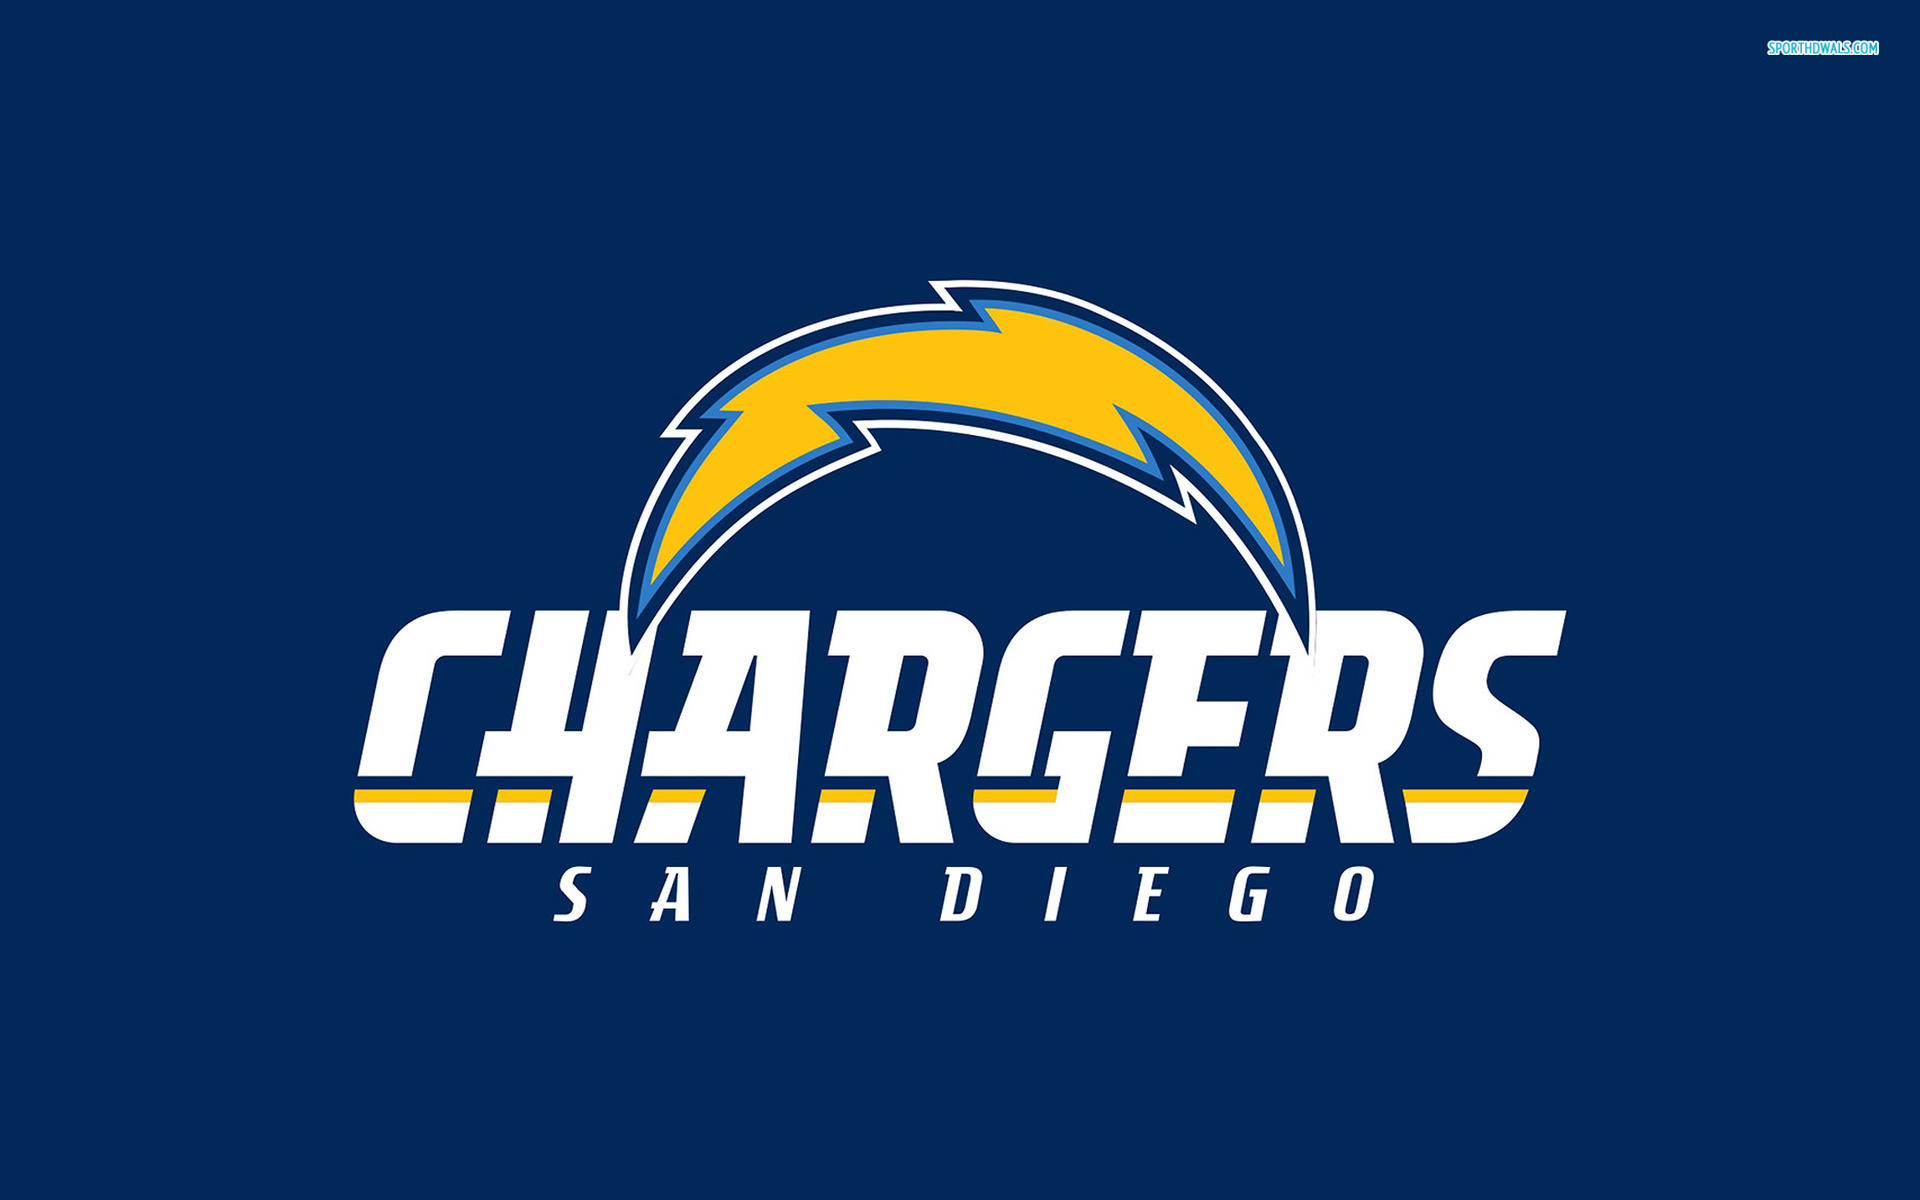 1920x1200 San Diego Chargers Official NFL Football Team Logo x Flag - Wincraft Inc.